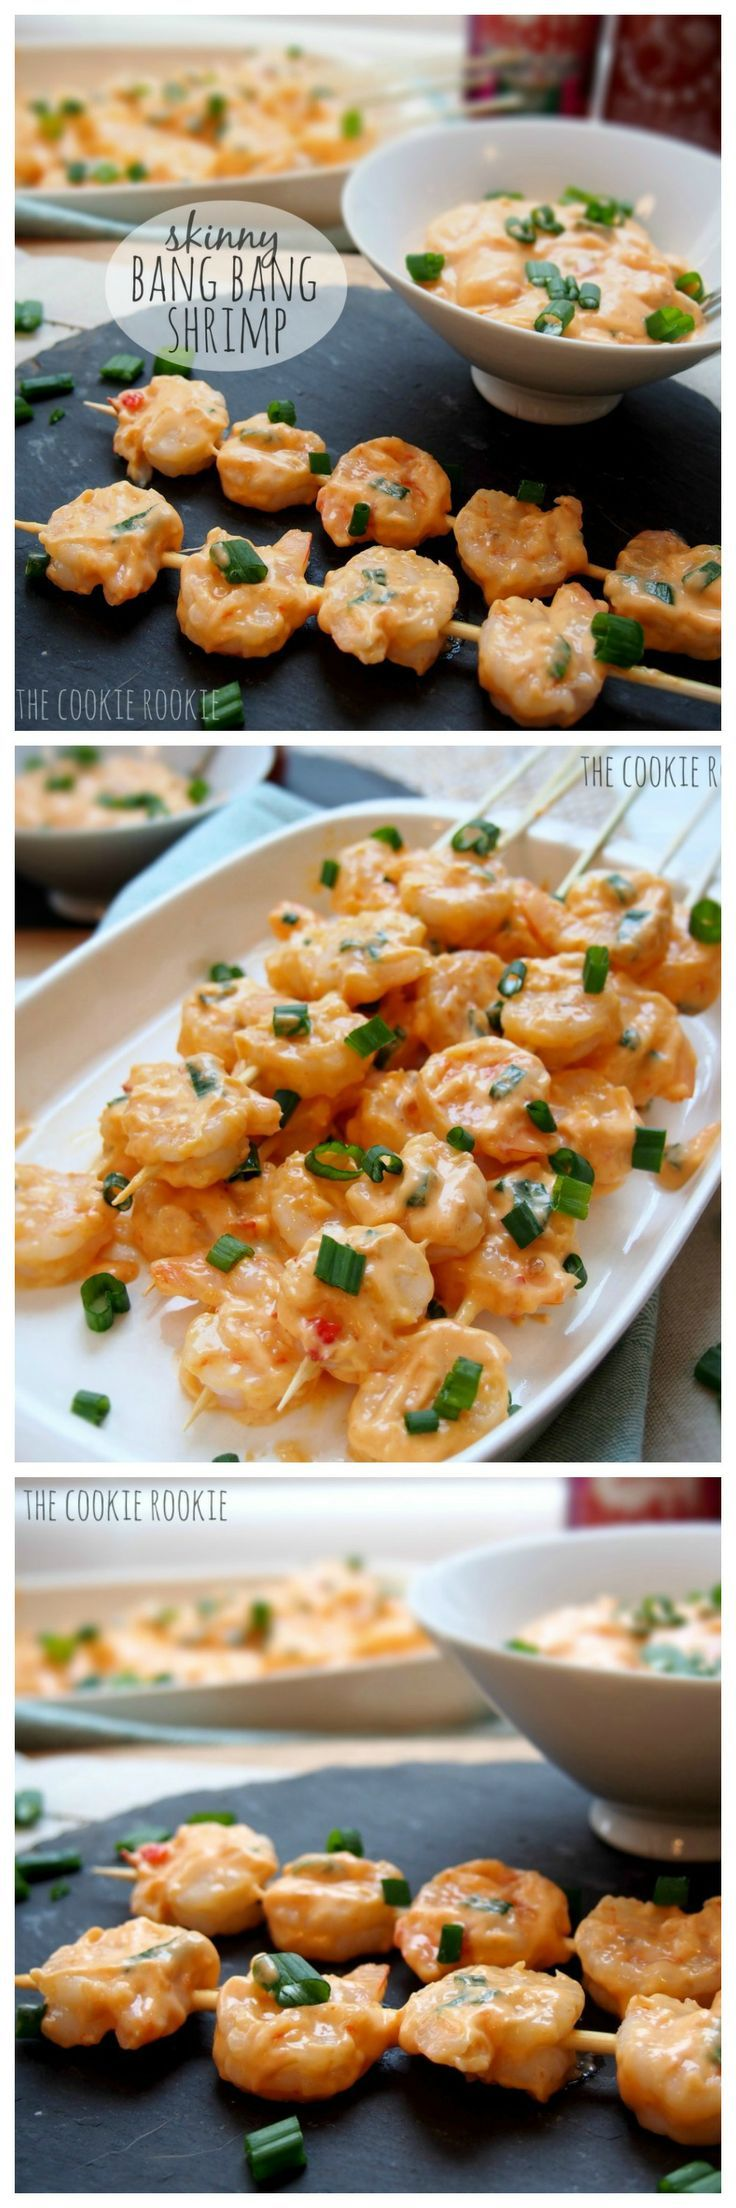 Skinny Bang Bang Shrimp!! Skinny spicy shrimp, the perfect appetizer!! We Love these!